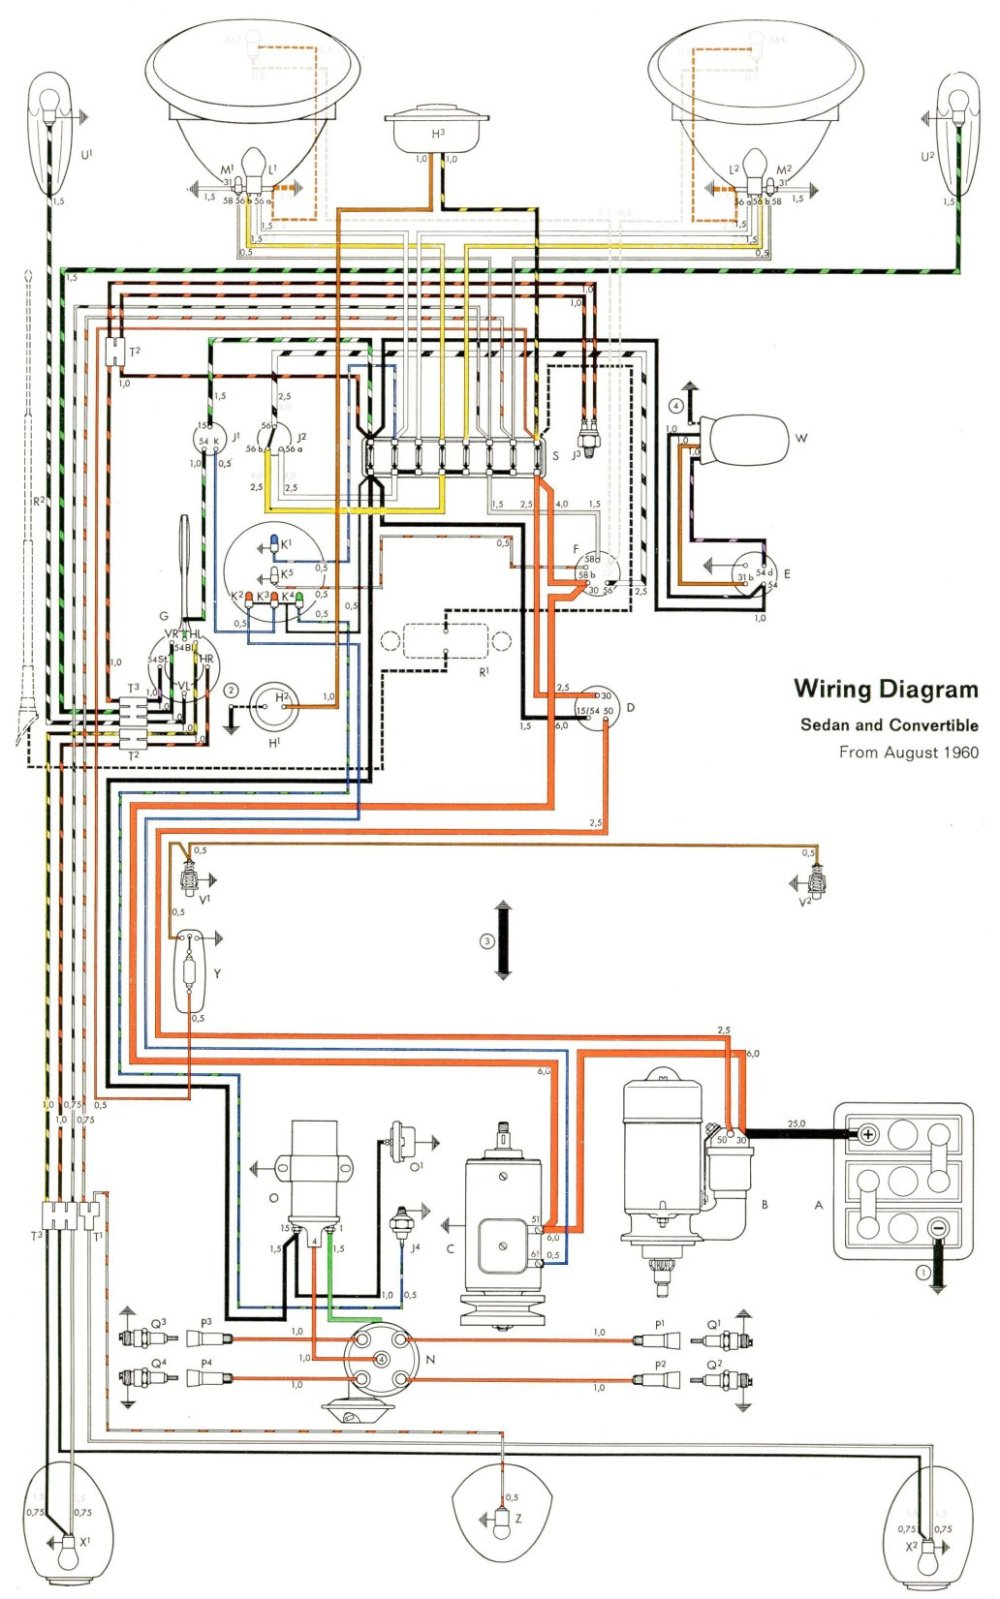 medium resolution of 1974 vw wiring diagrams get rid of wiring diagram problem 1974 vw bug ignition coil wiring 1974 vw bug wiring